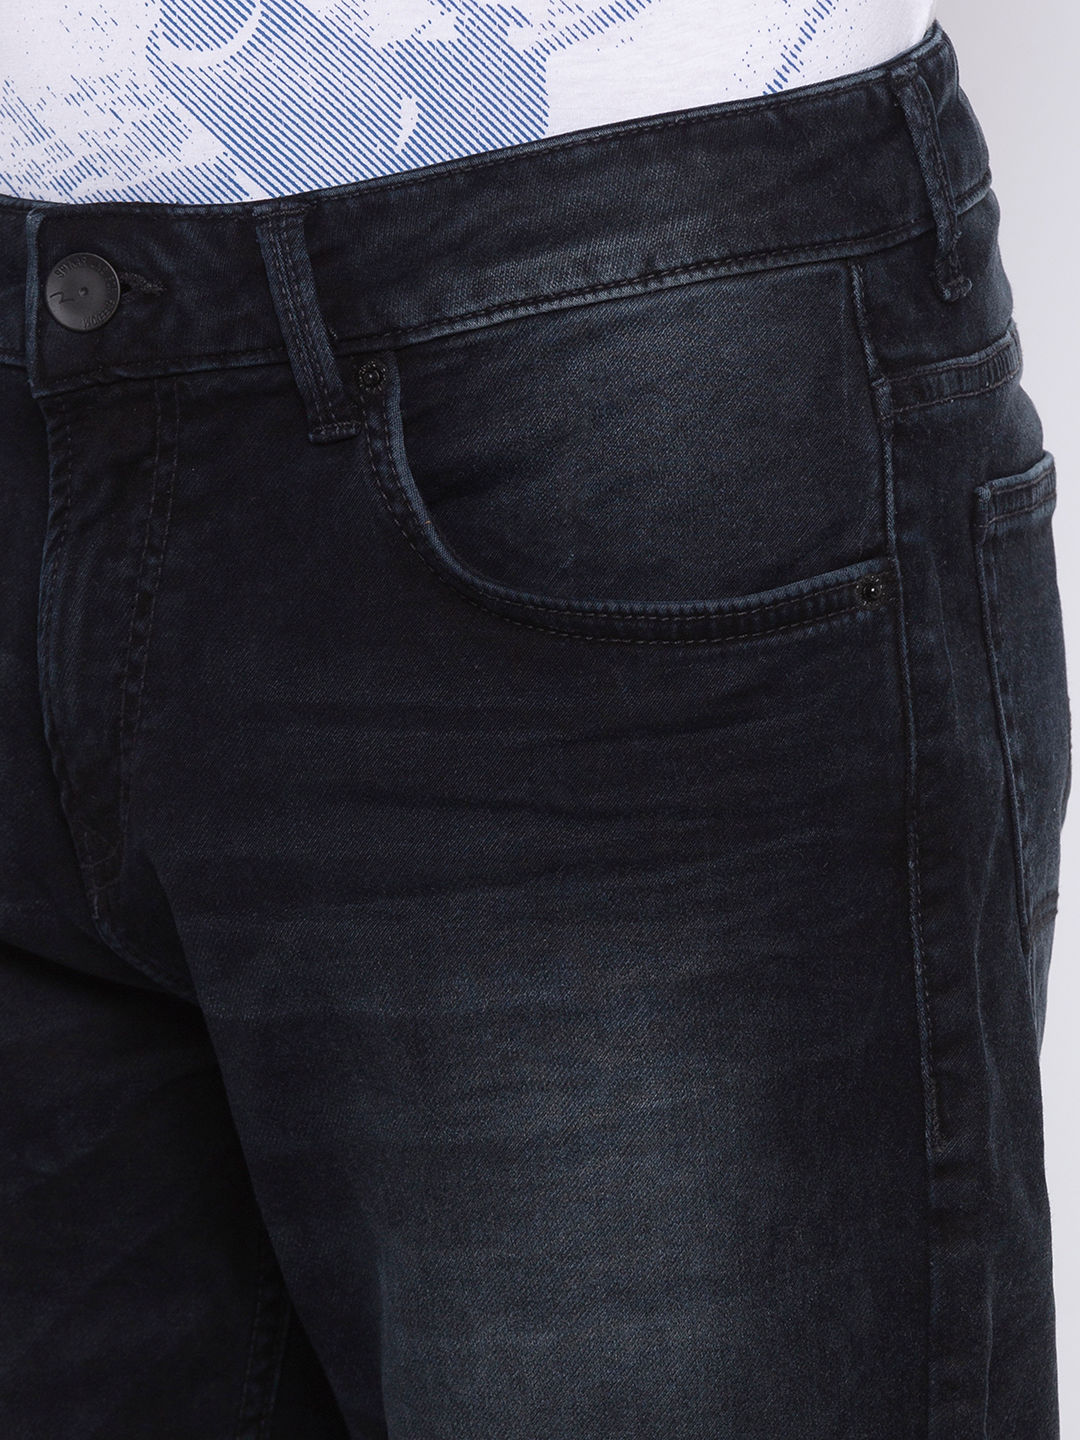 Black Solid Straight Fit Jeans